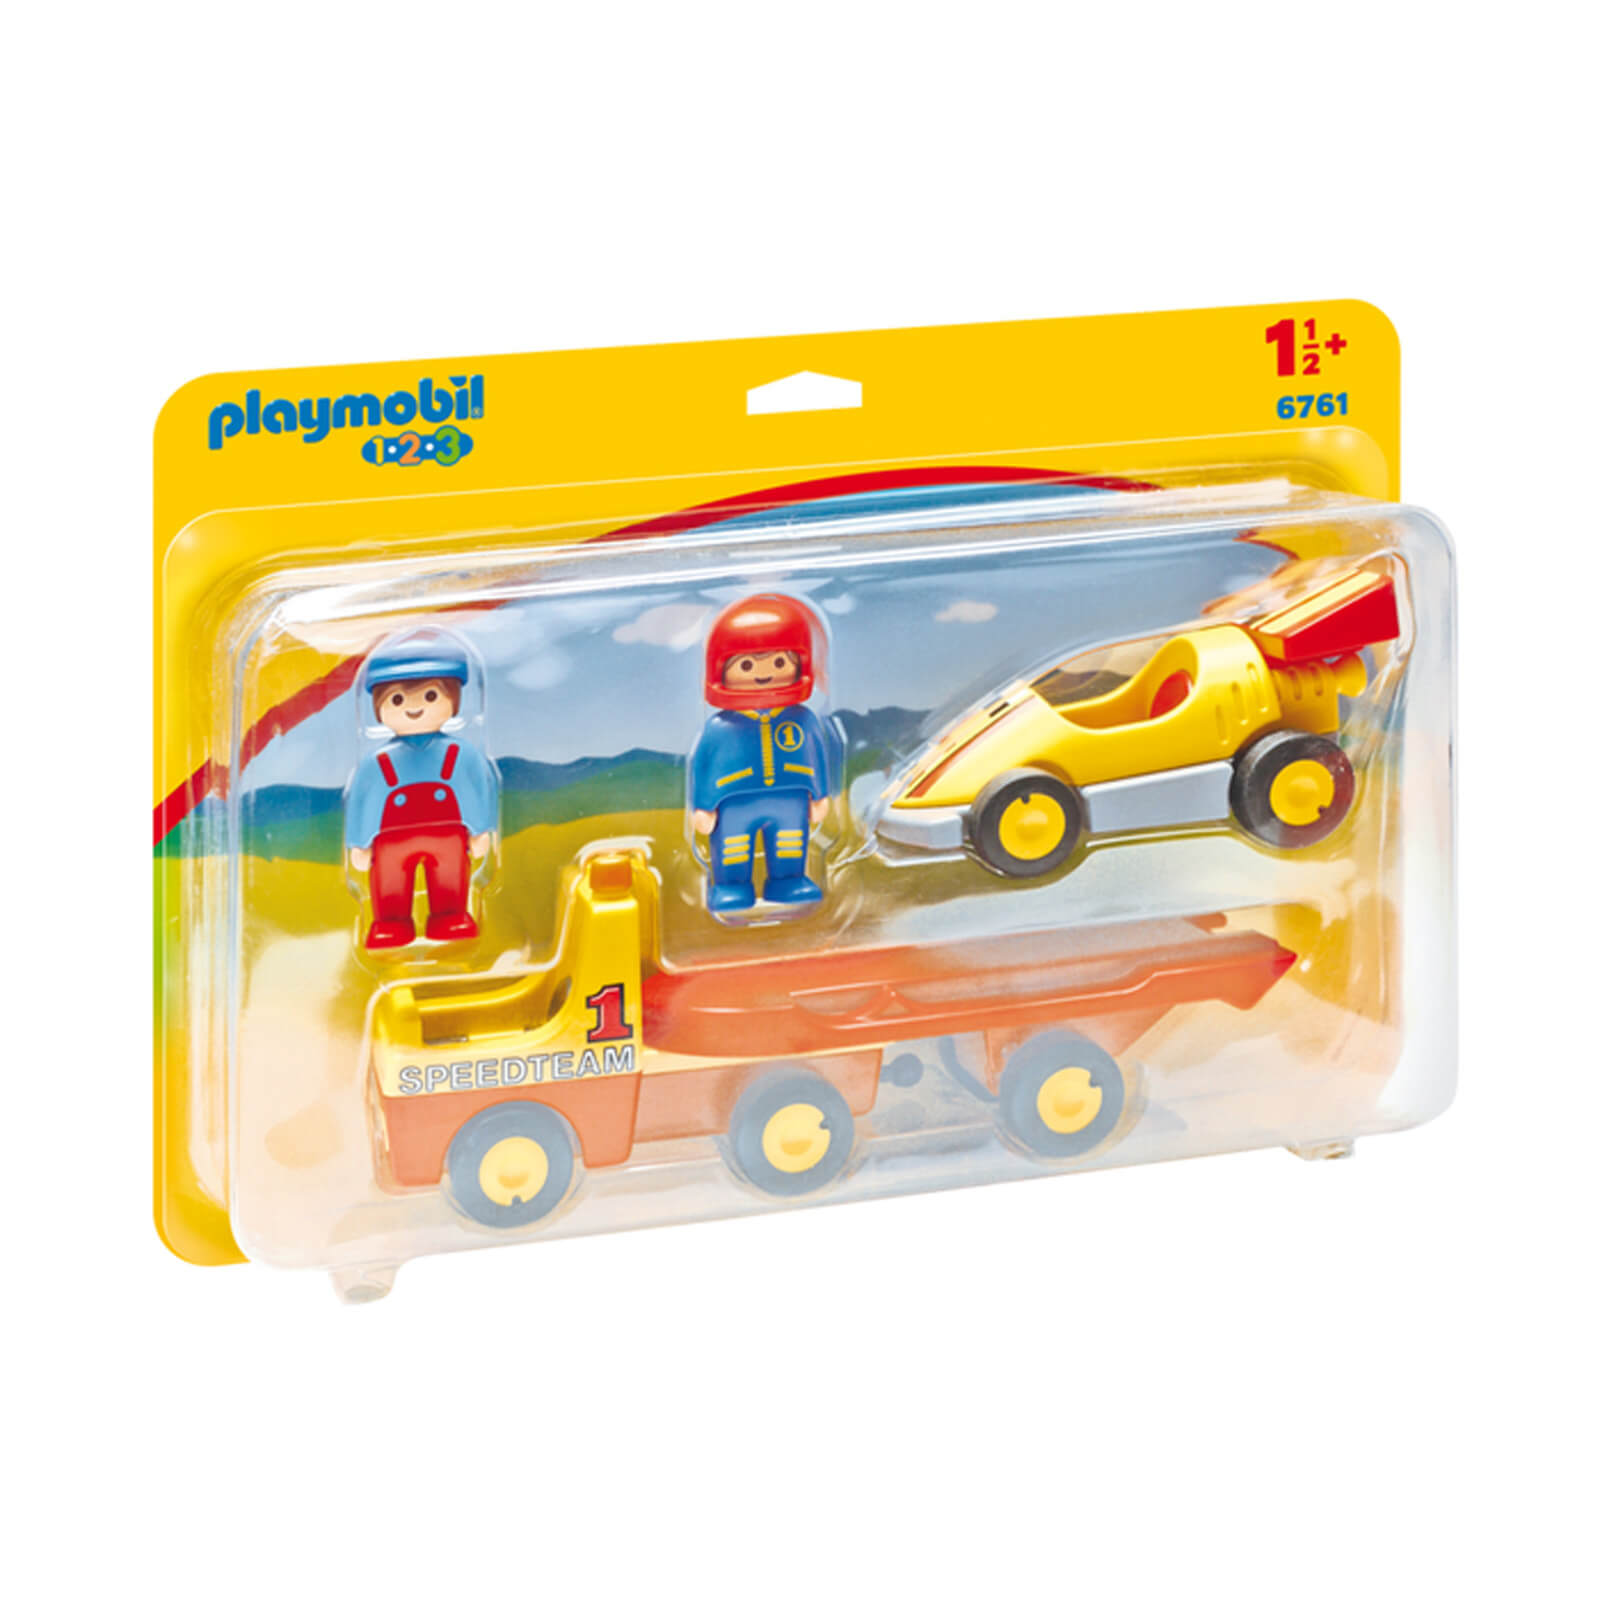 Playmobil 1.2.3 Tow Truck with Race Car (6761)